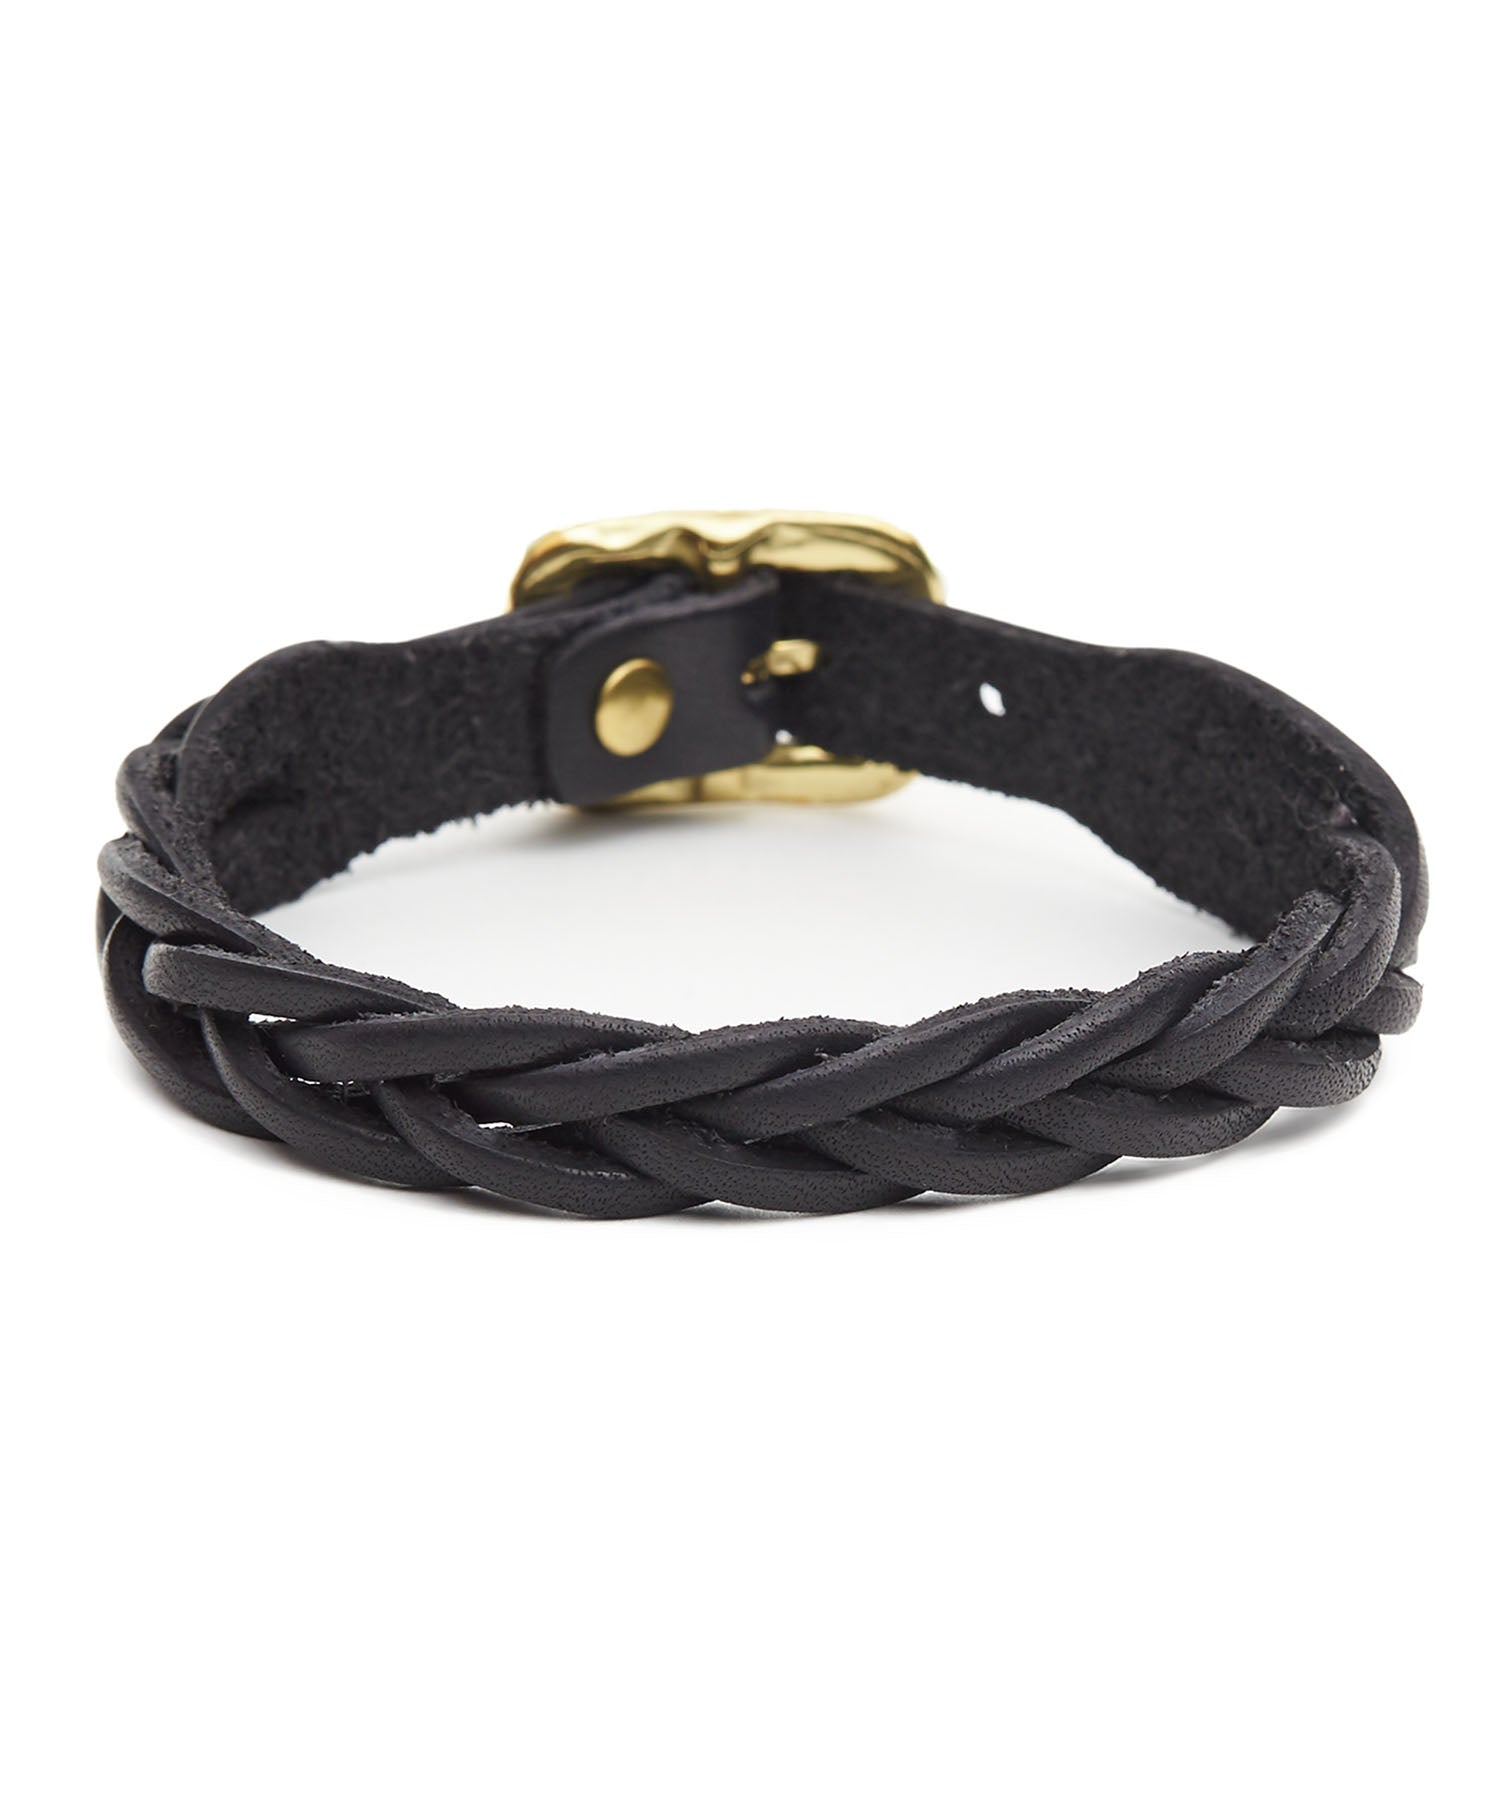 Il Bisonte Braided Cowhide Bracelet in Black